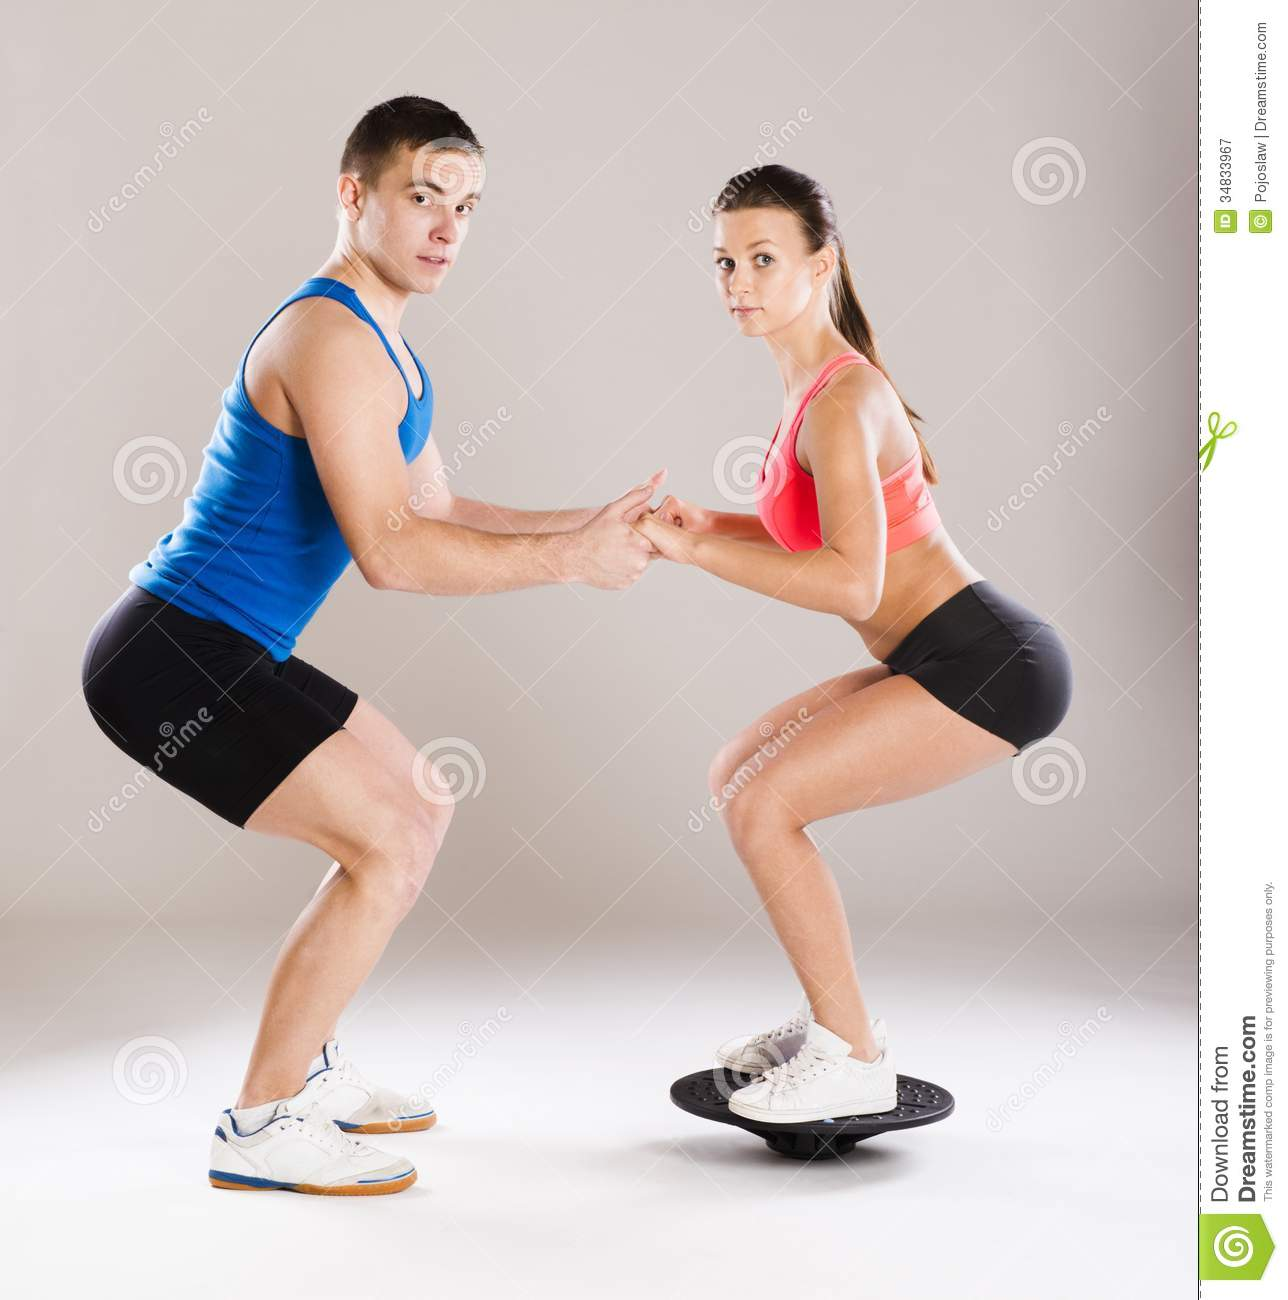 Amino Z Team Womens Weight Lifting Bodybuilding Gym: Athletic Man And Woman Stock Image. Image Of Athletic